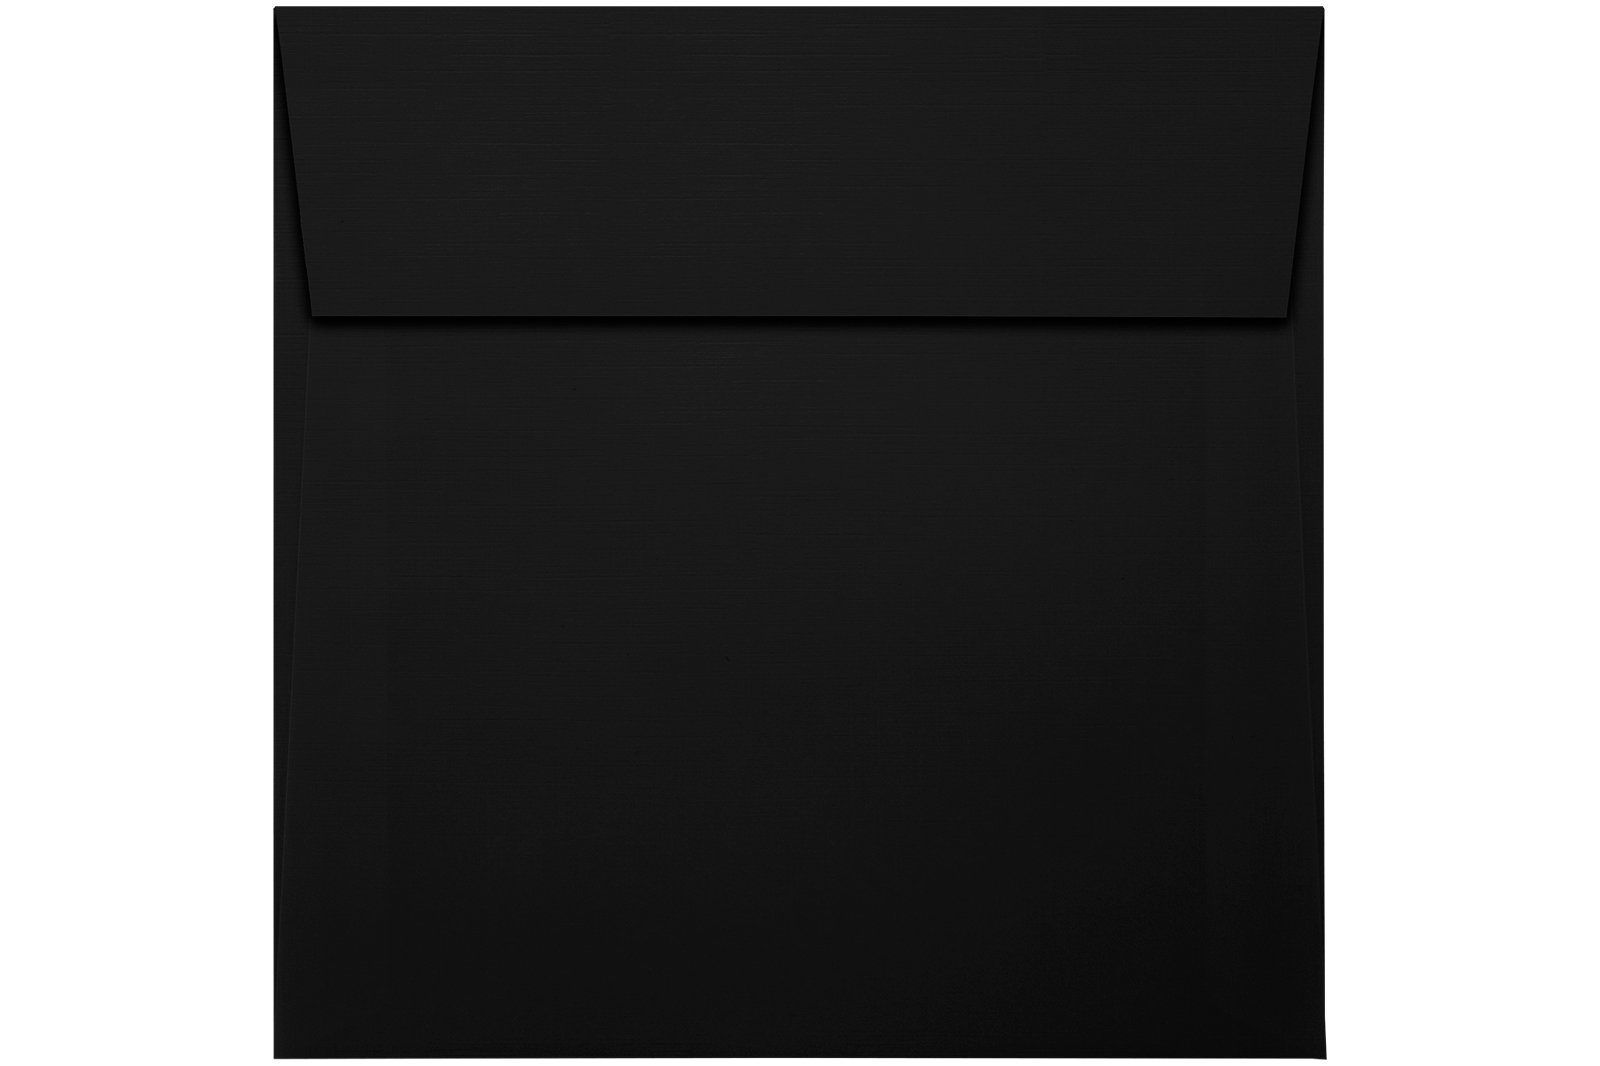 5 1/2 x 5 1/2 Square Envelopes w/Peel & Press - Black Linen (50 Qty.) | Perfect For Thank You Notes, RSVPs, Greeting Cards, Weddings or any Announcement | 80lb Text Paper | 8515-BLI-50